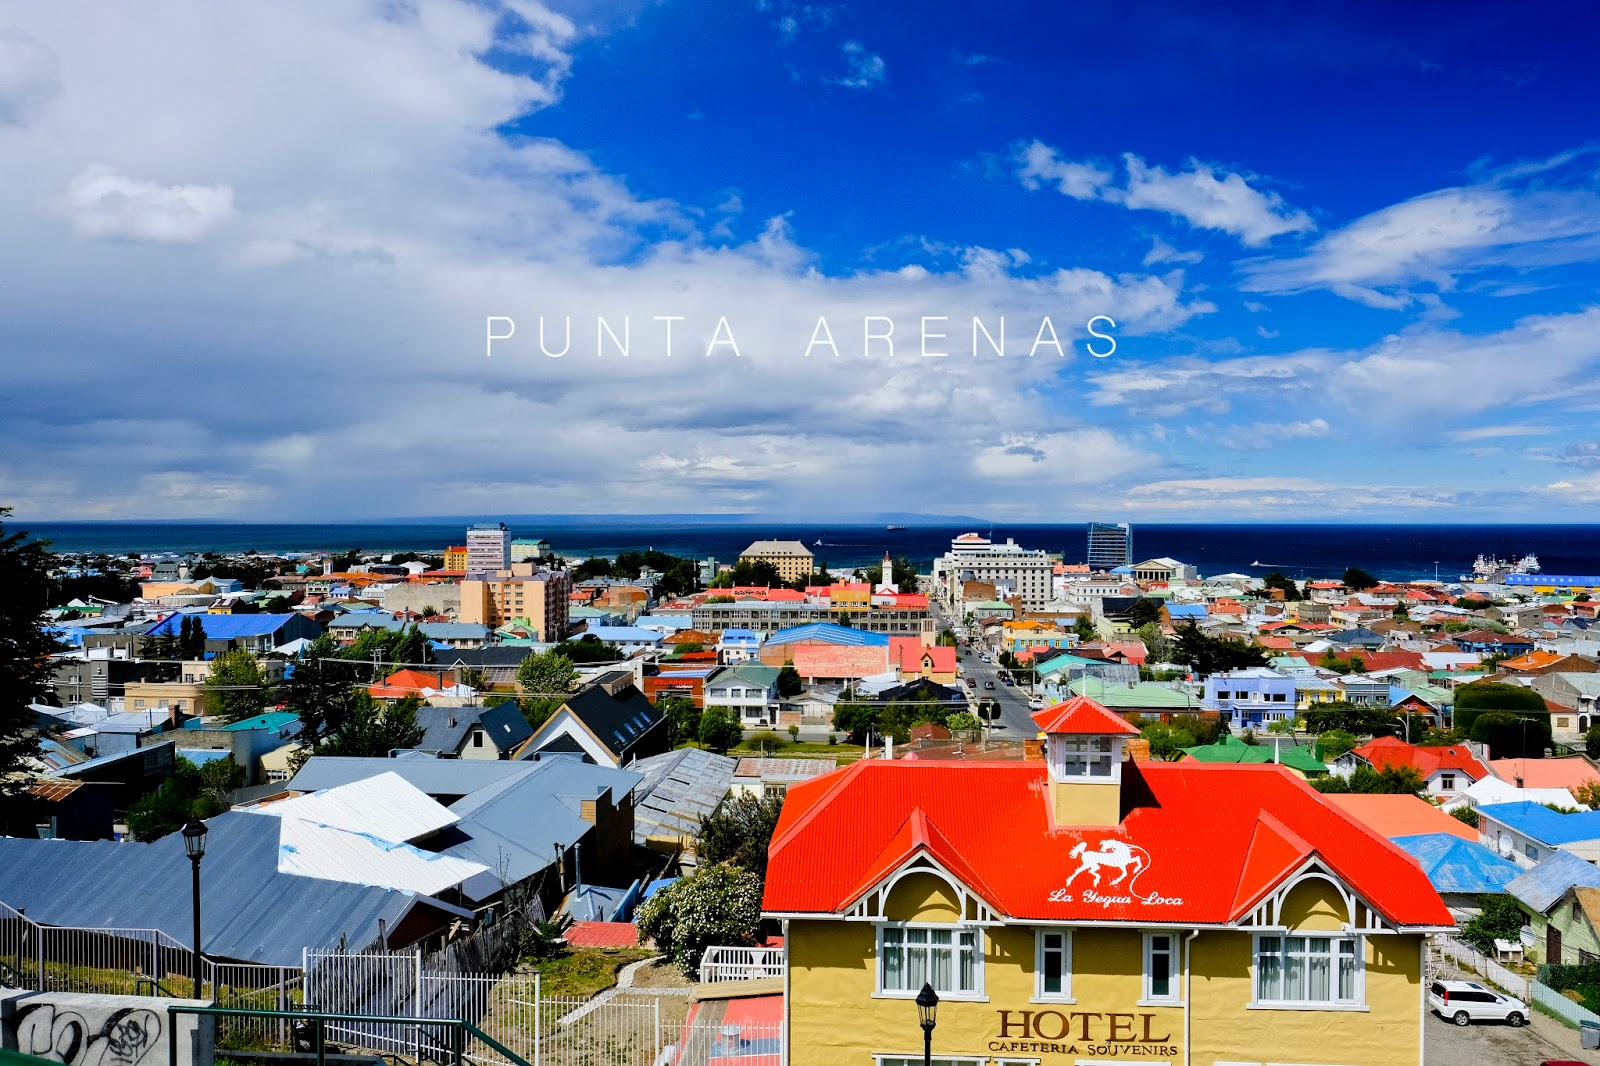 punta arenas latino personals For me, punta arenas was only a stopover, but i did take the for me, punta arenas was only a stopover, but i did take the time to walk around the center a bit, kissed the indio's toe, visit the museo and go up to the mirador.